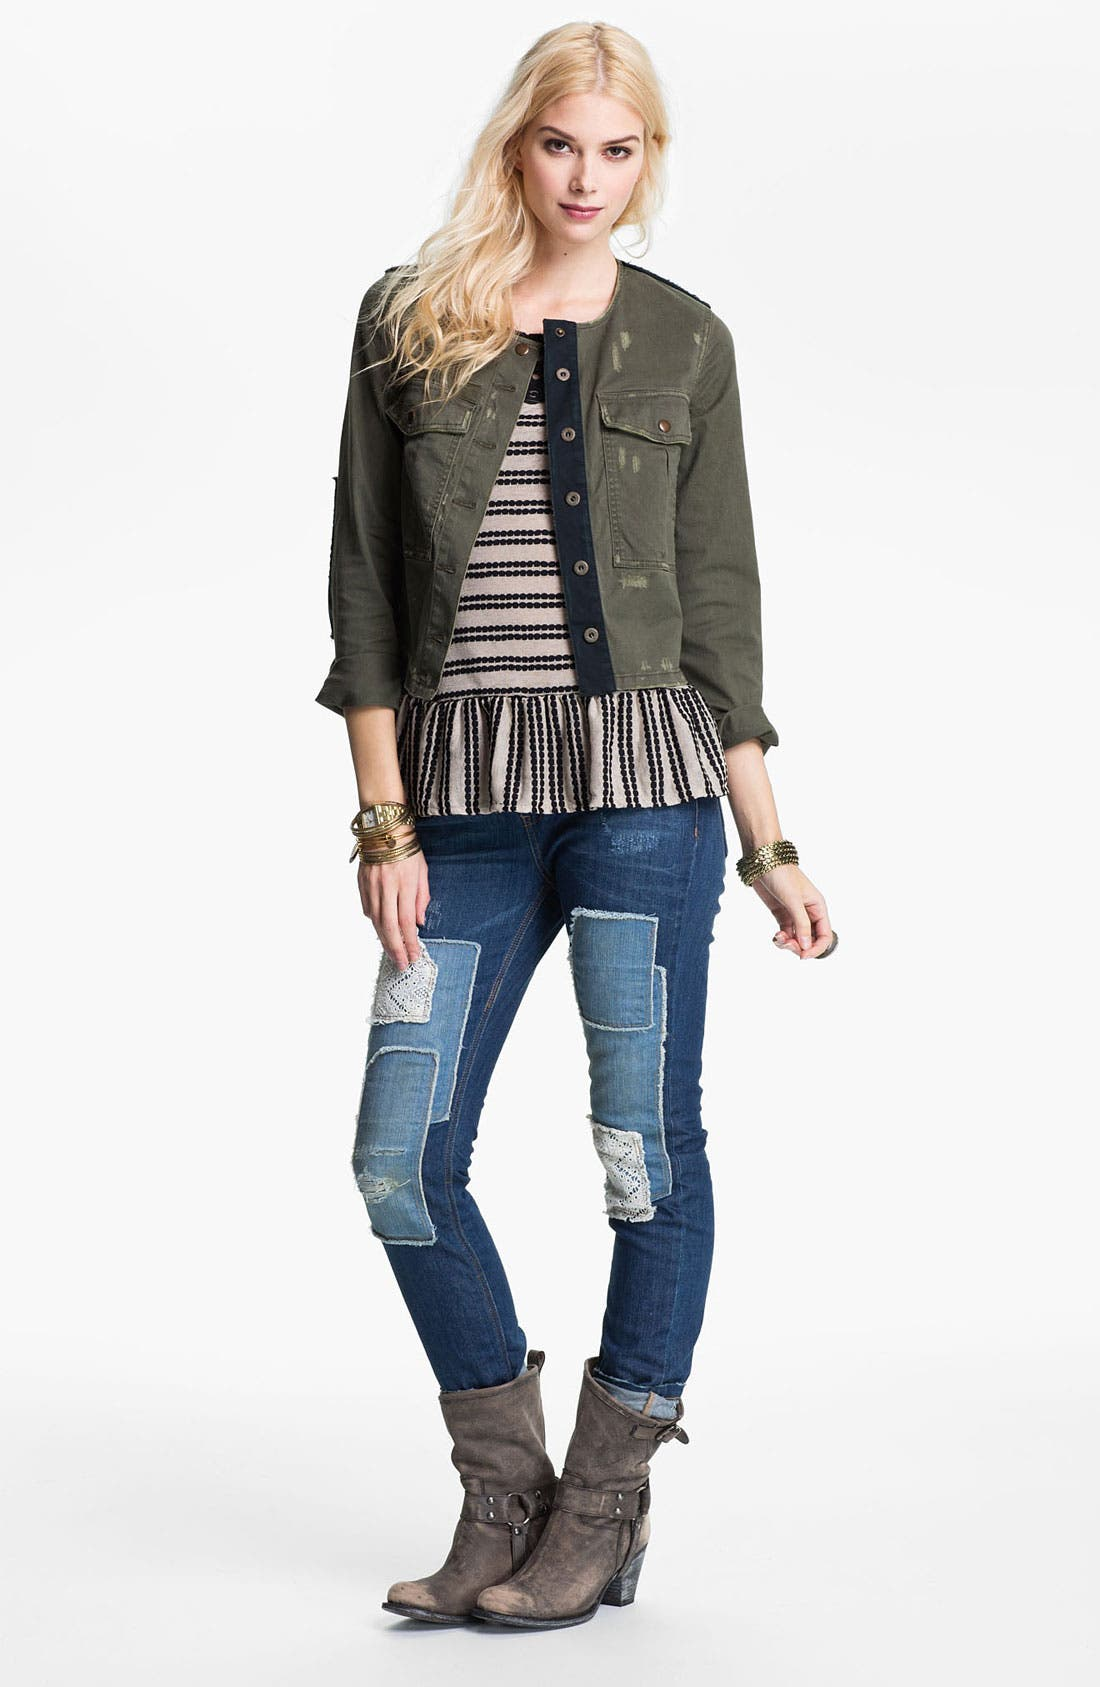 Main Image - Free People Jacket, Top & Jeans